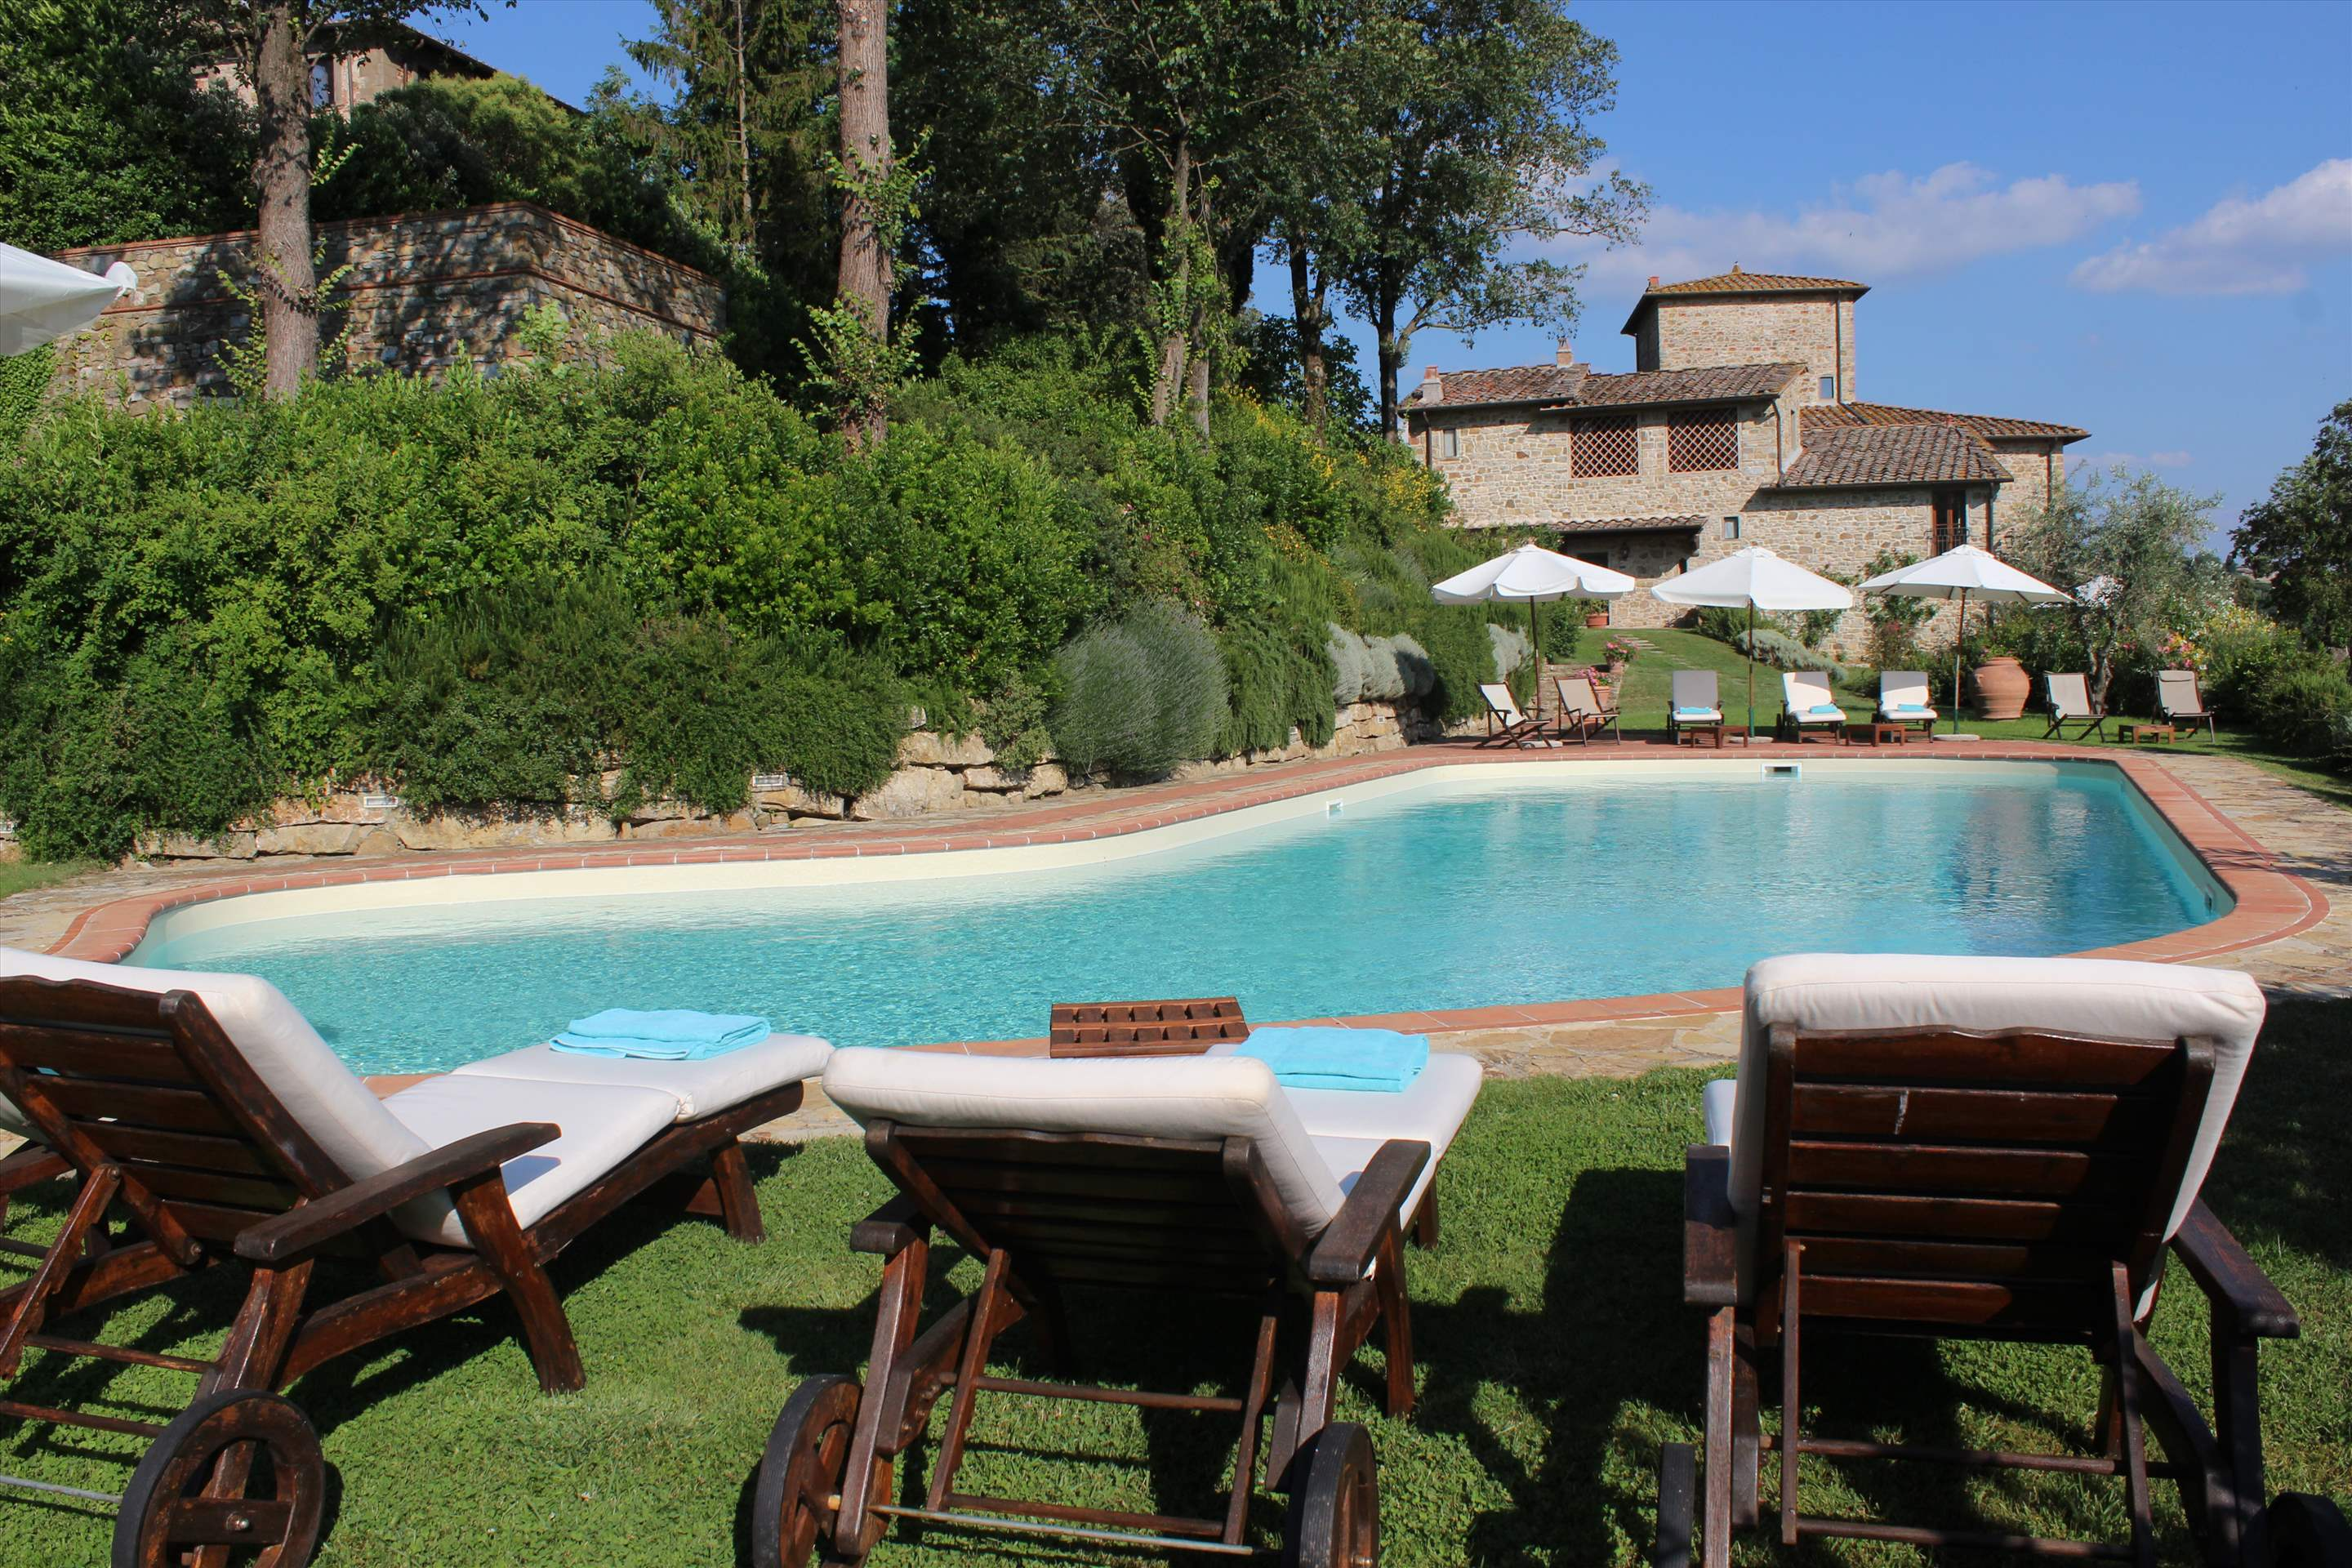 Apartment Limonaia, 1 bedroom apartment in Chianti & Countryside, Tuscany Photo #1